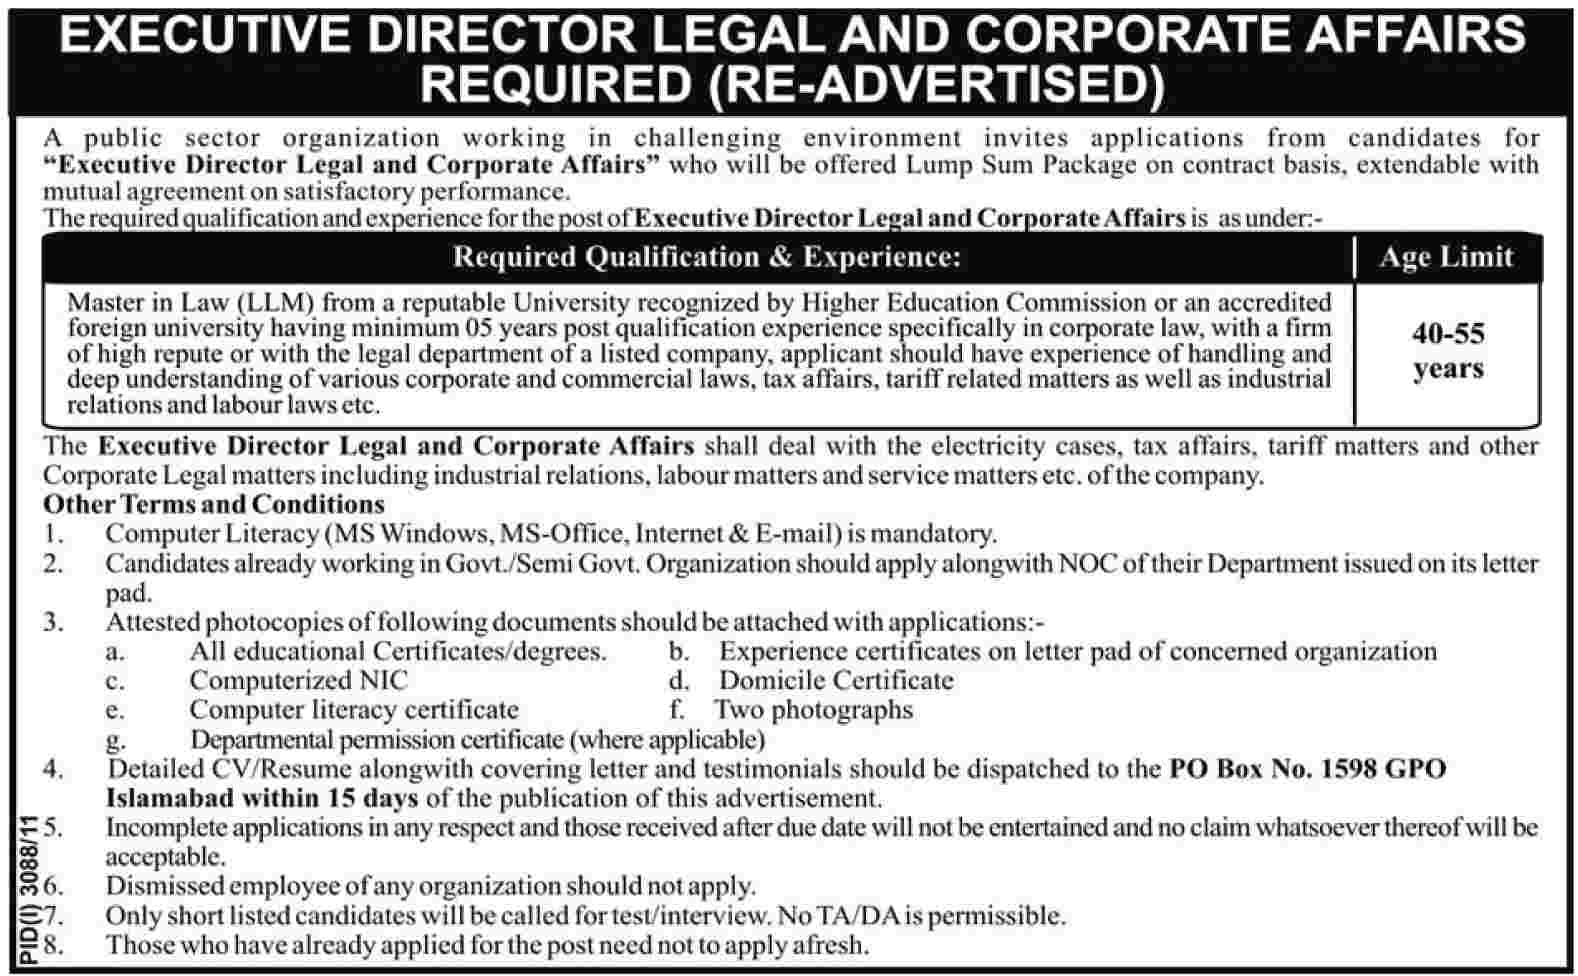 Executive Director (Legal & Corporate Affairs) Required by a Public Sector Organization